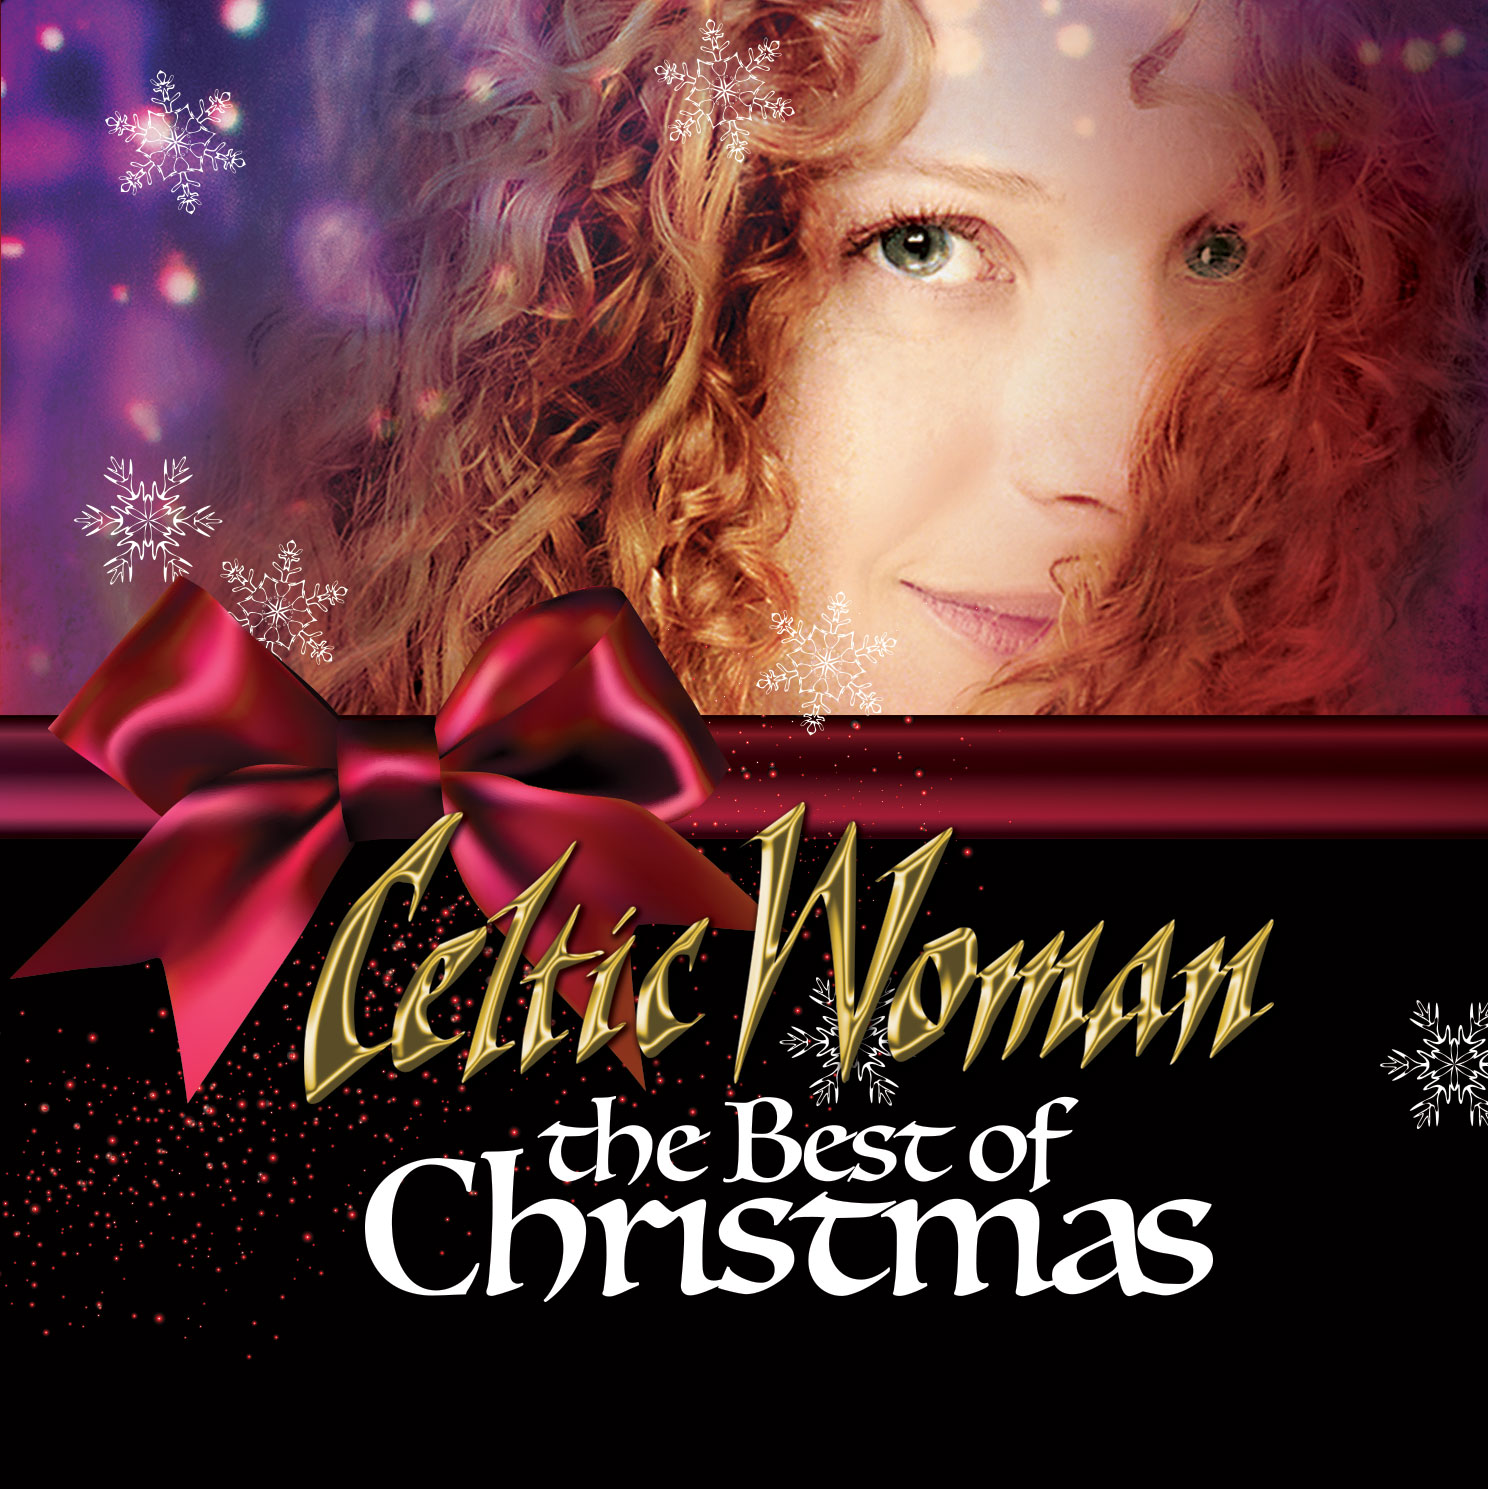 CelticWoman - Celtic Woman: The Best of Christmas